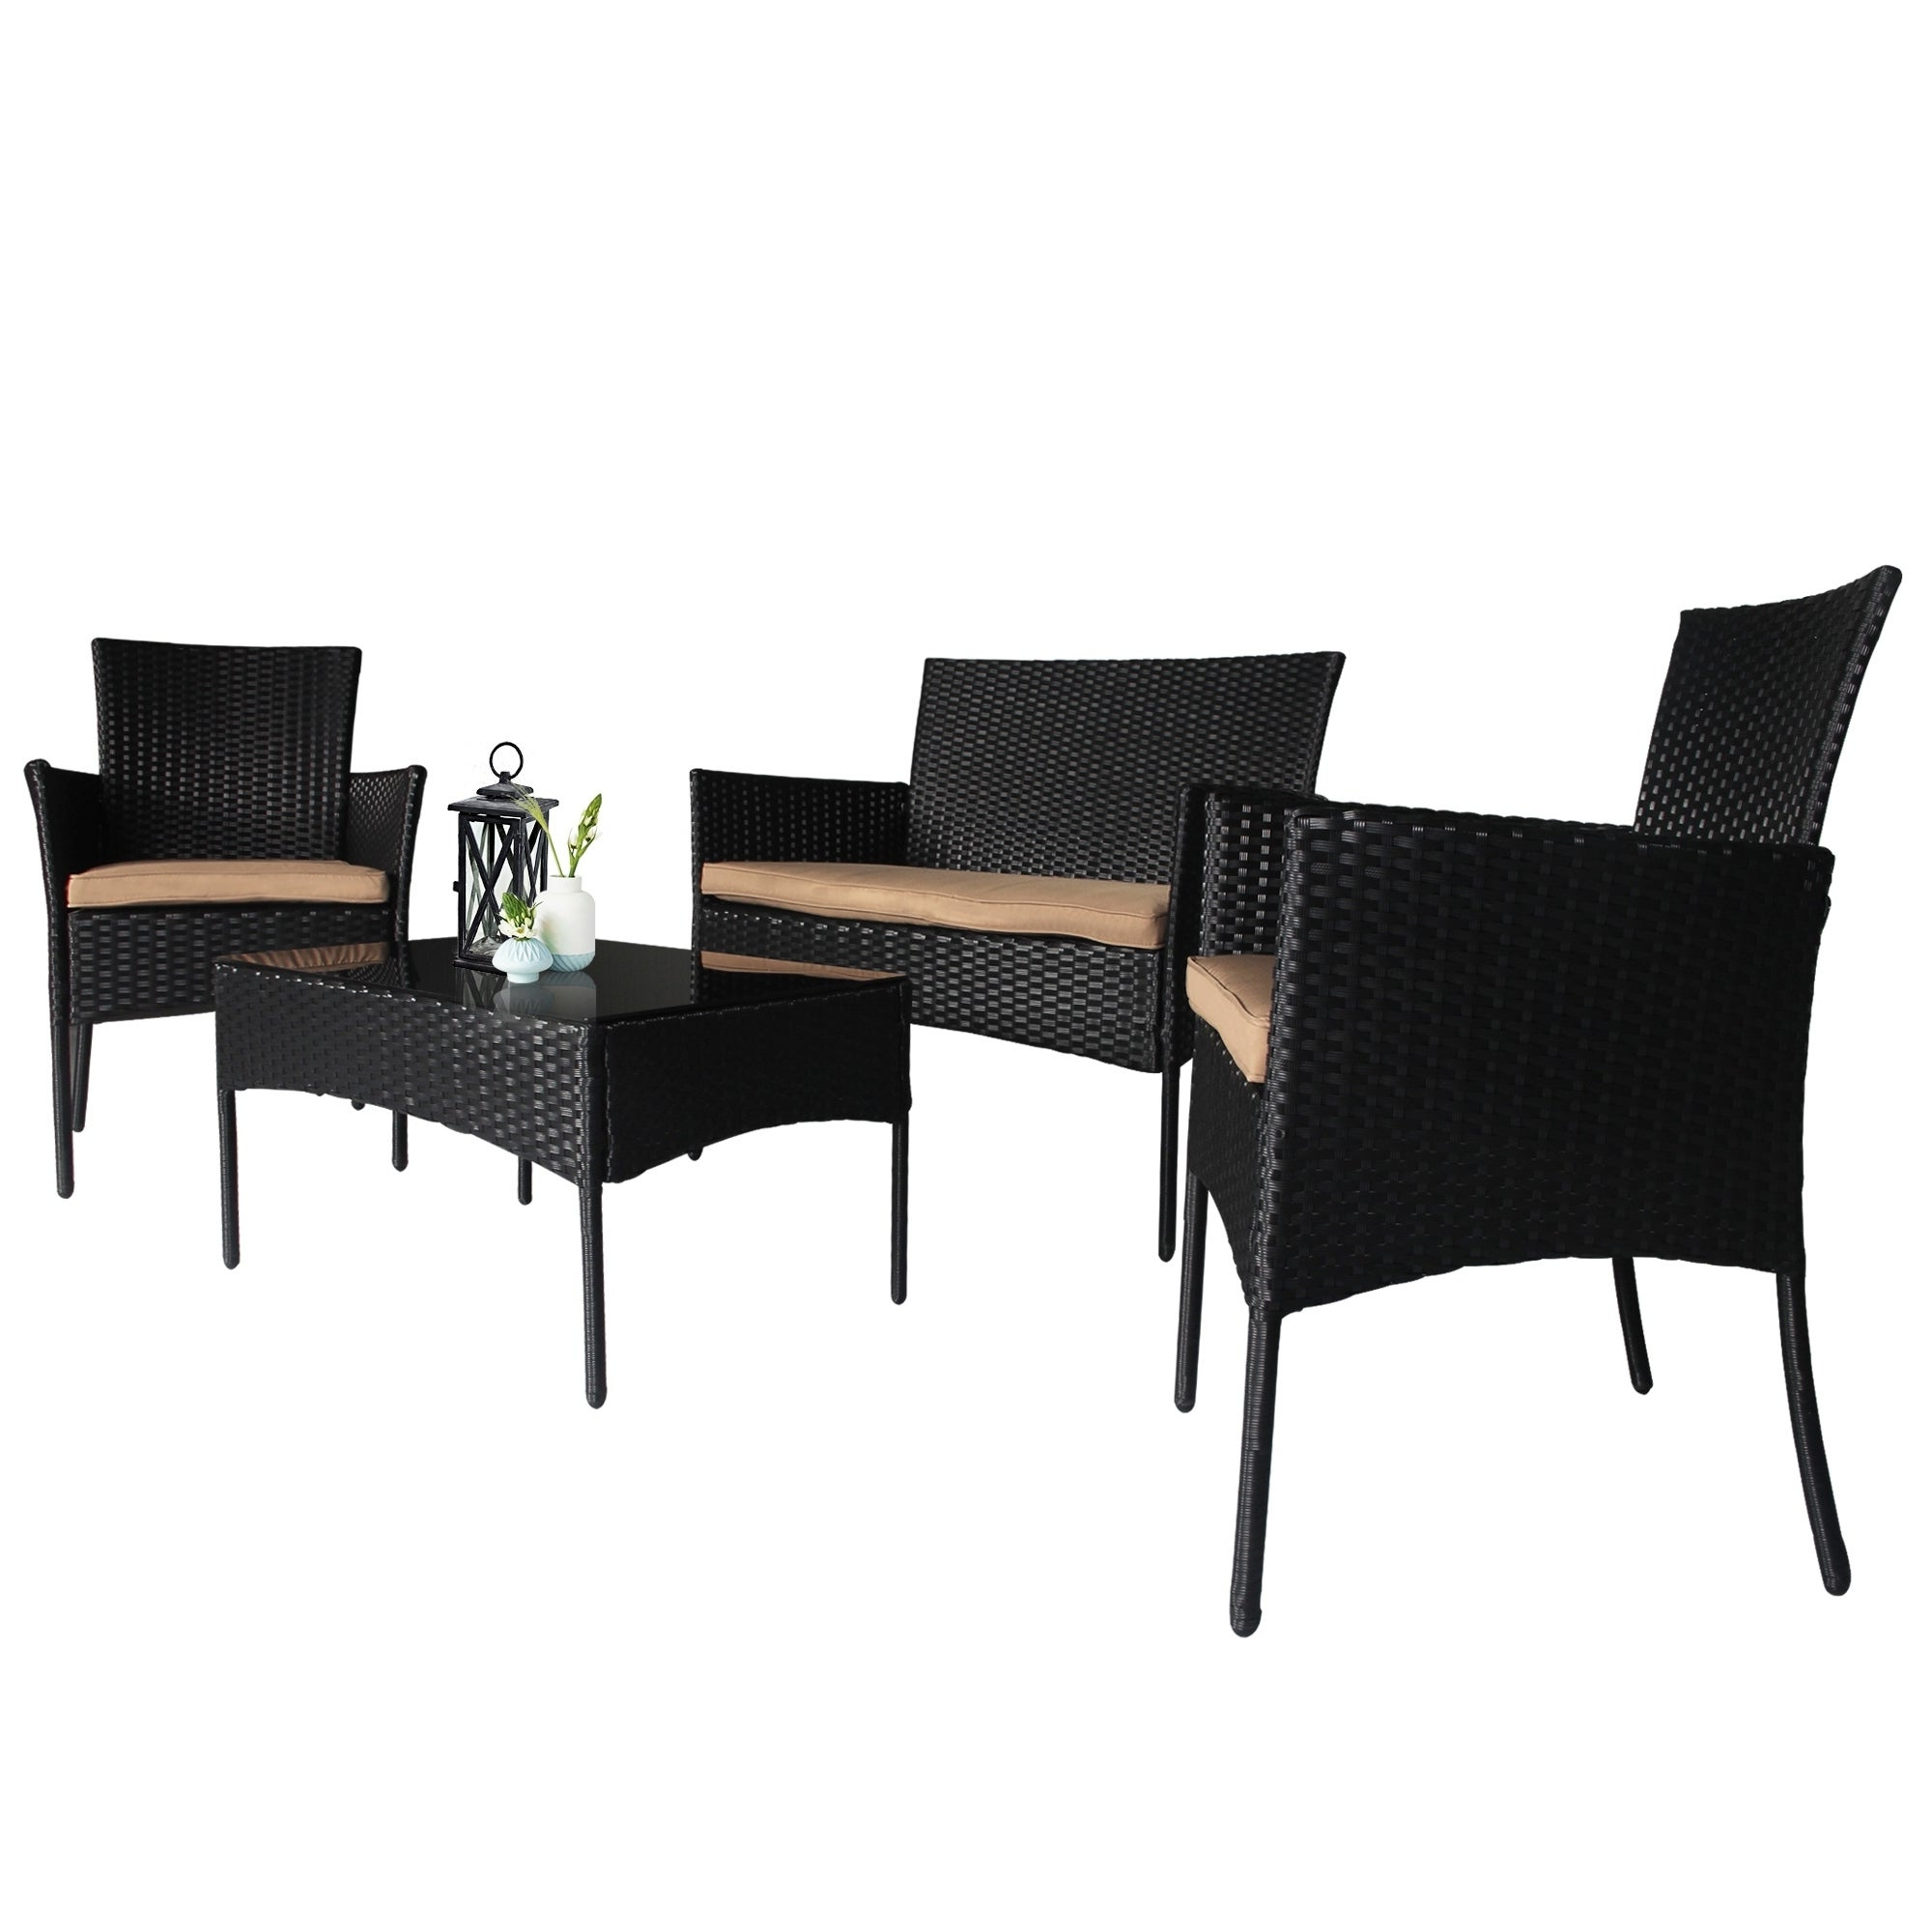 Boyce Outdoor Patio Sectionals With Cushions Within 2019 Boyce 4 Piece Wicker Rattan Conversation Set (View 9 of 25)